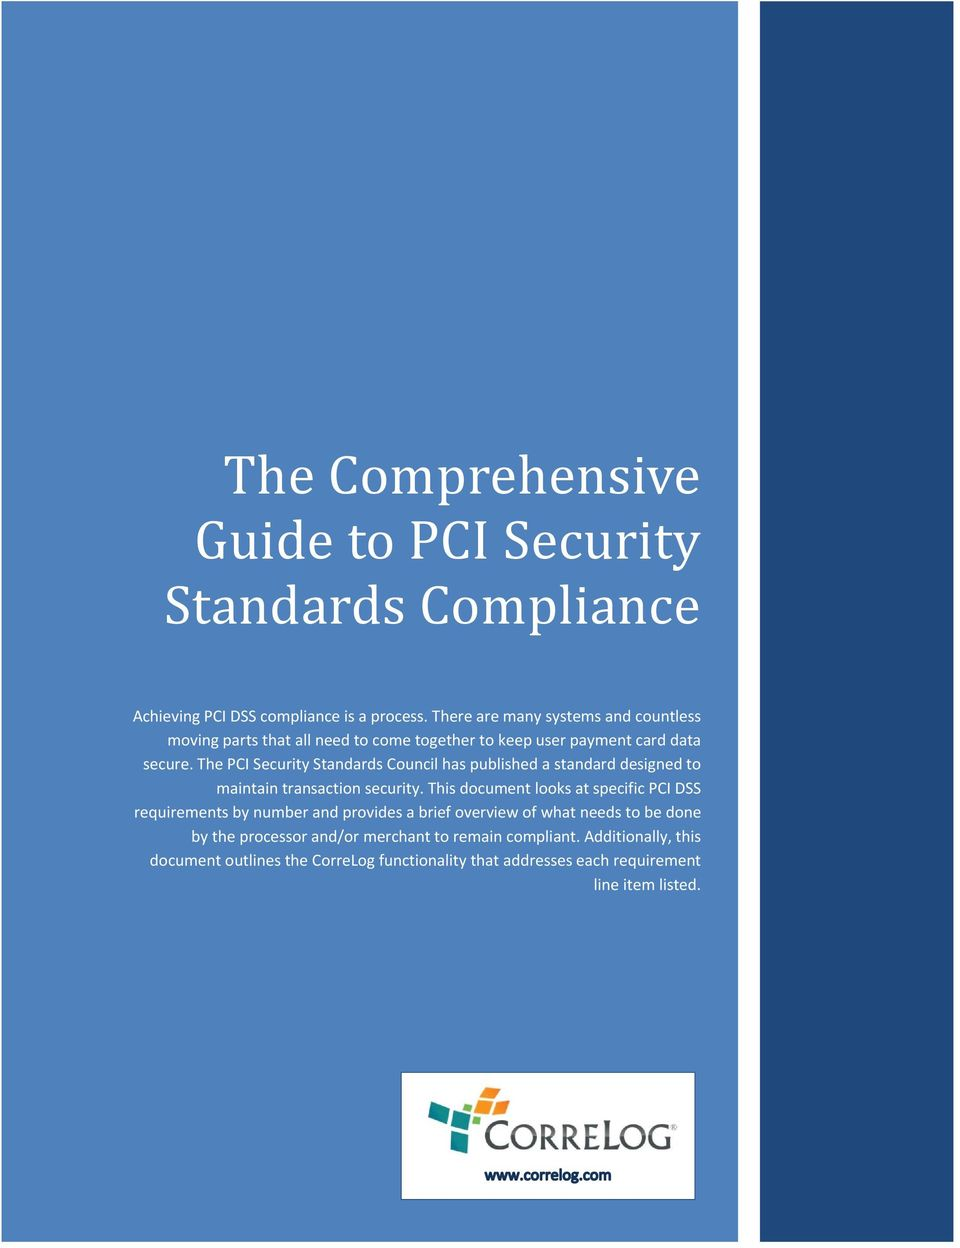 The PCI Security Standards Council has published a standard designed to maintain transaction security.